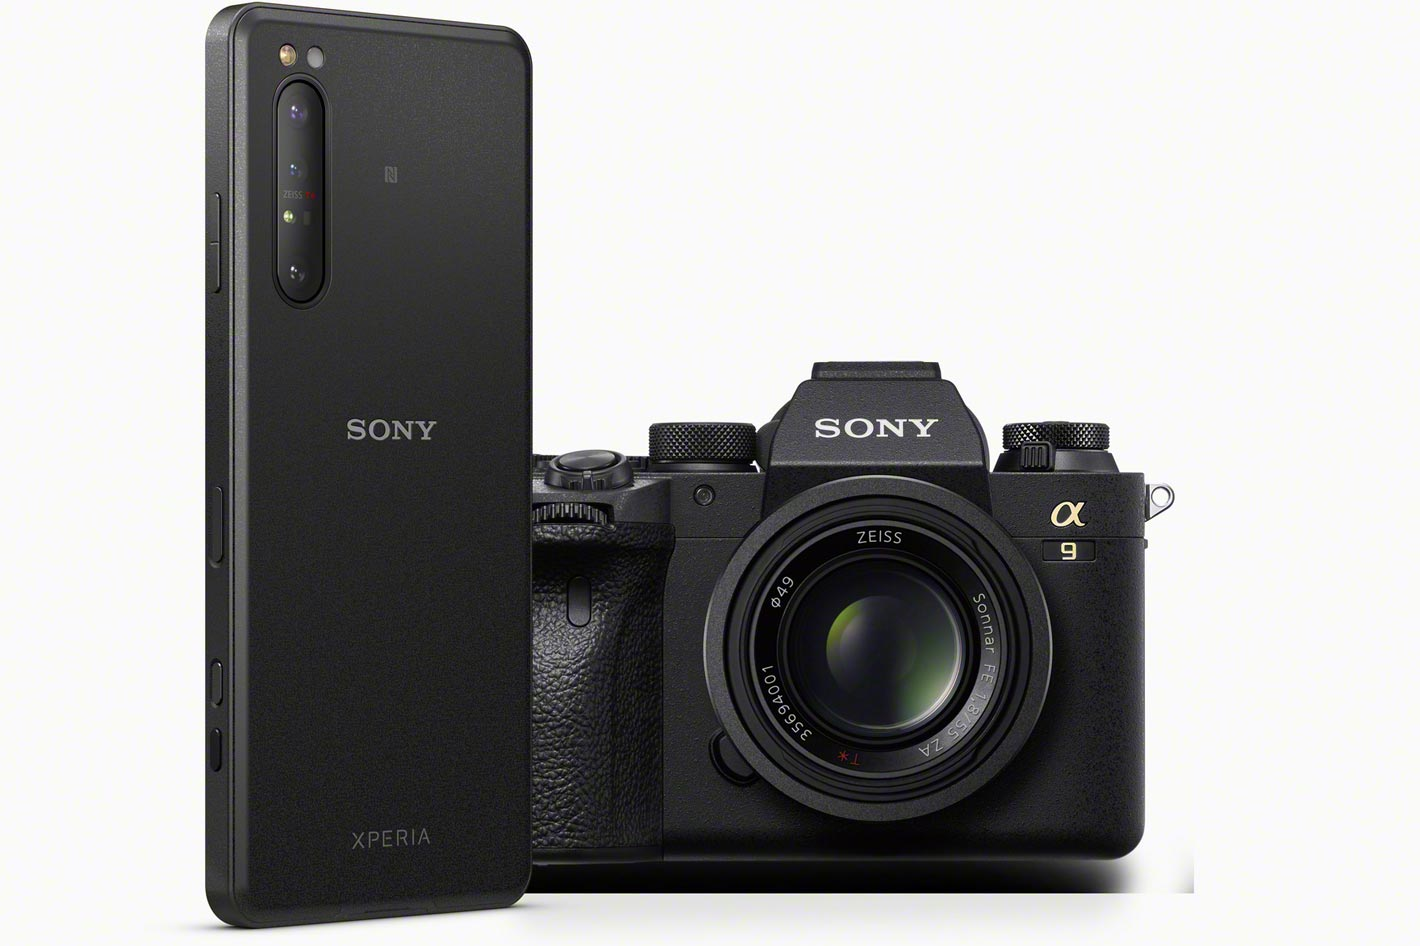 Sony Xperia 1 II: world's first AF/AE continuous tracking smartphone ships in July-2